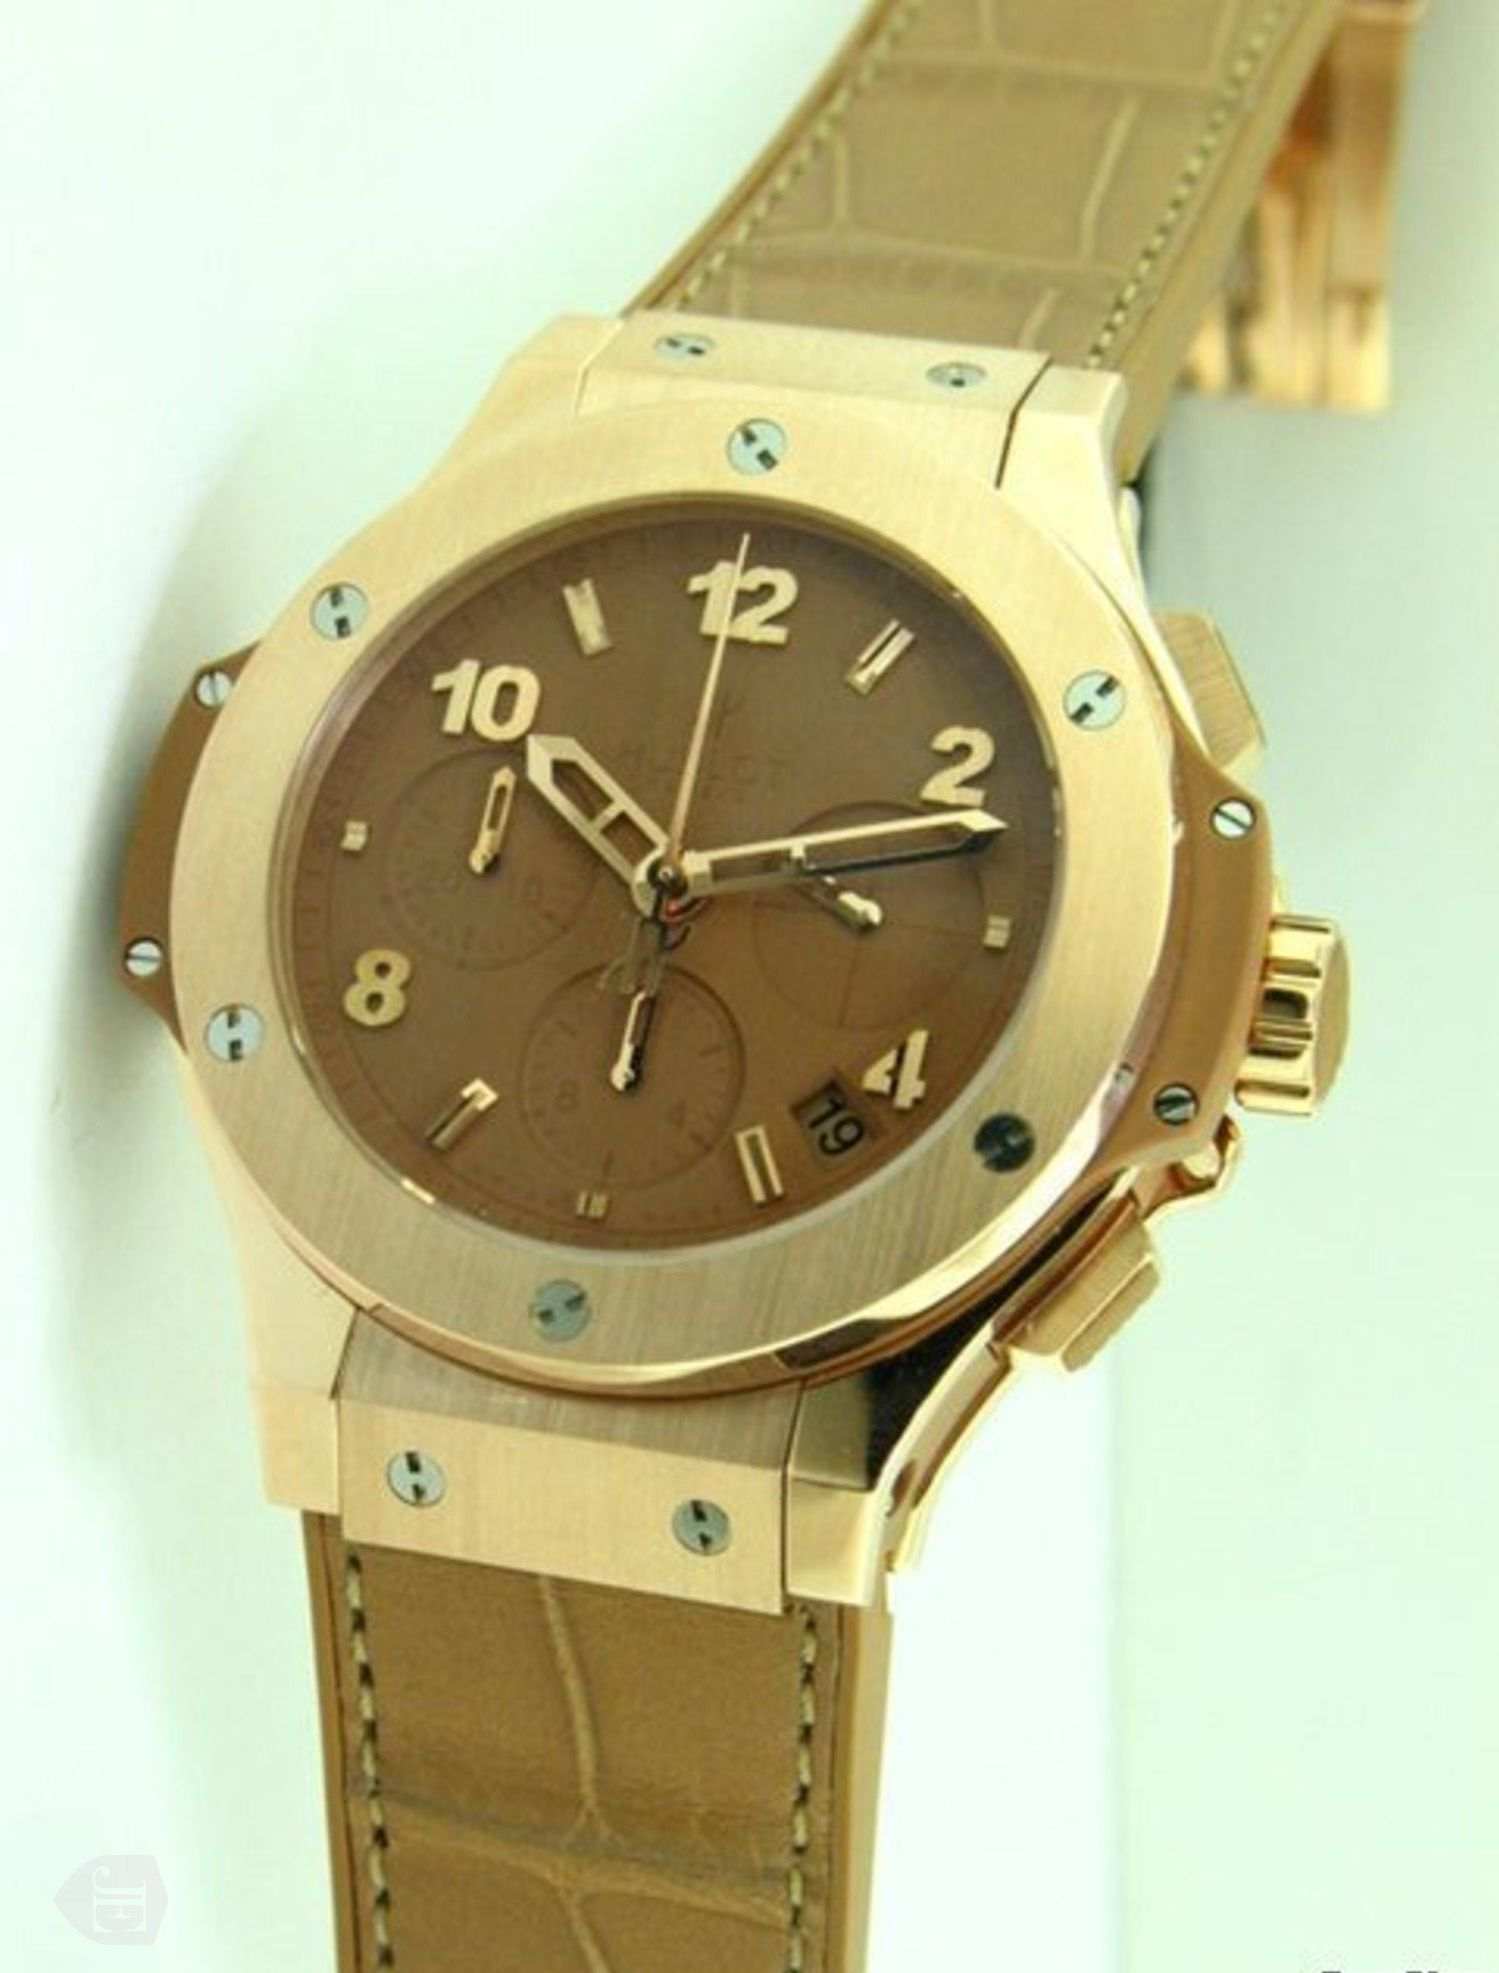 Hublot Big Bang Tutti Frutti Camel 41mm in Rose Gold